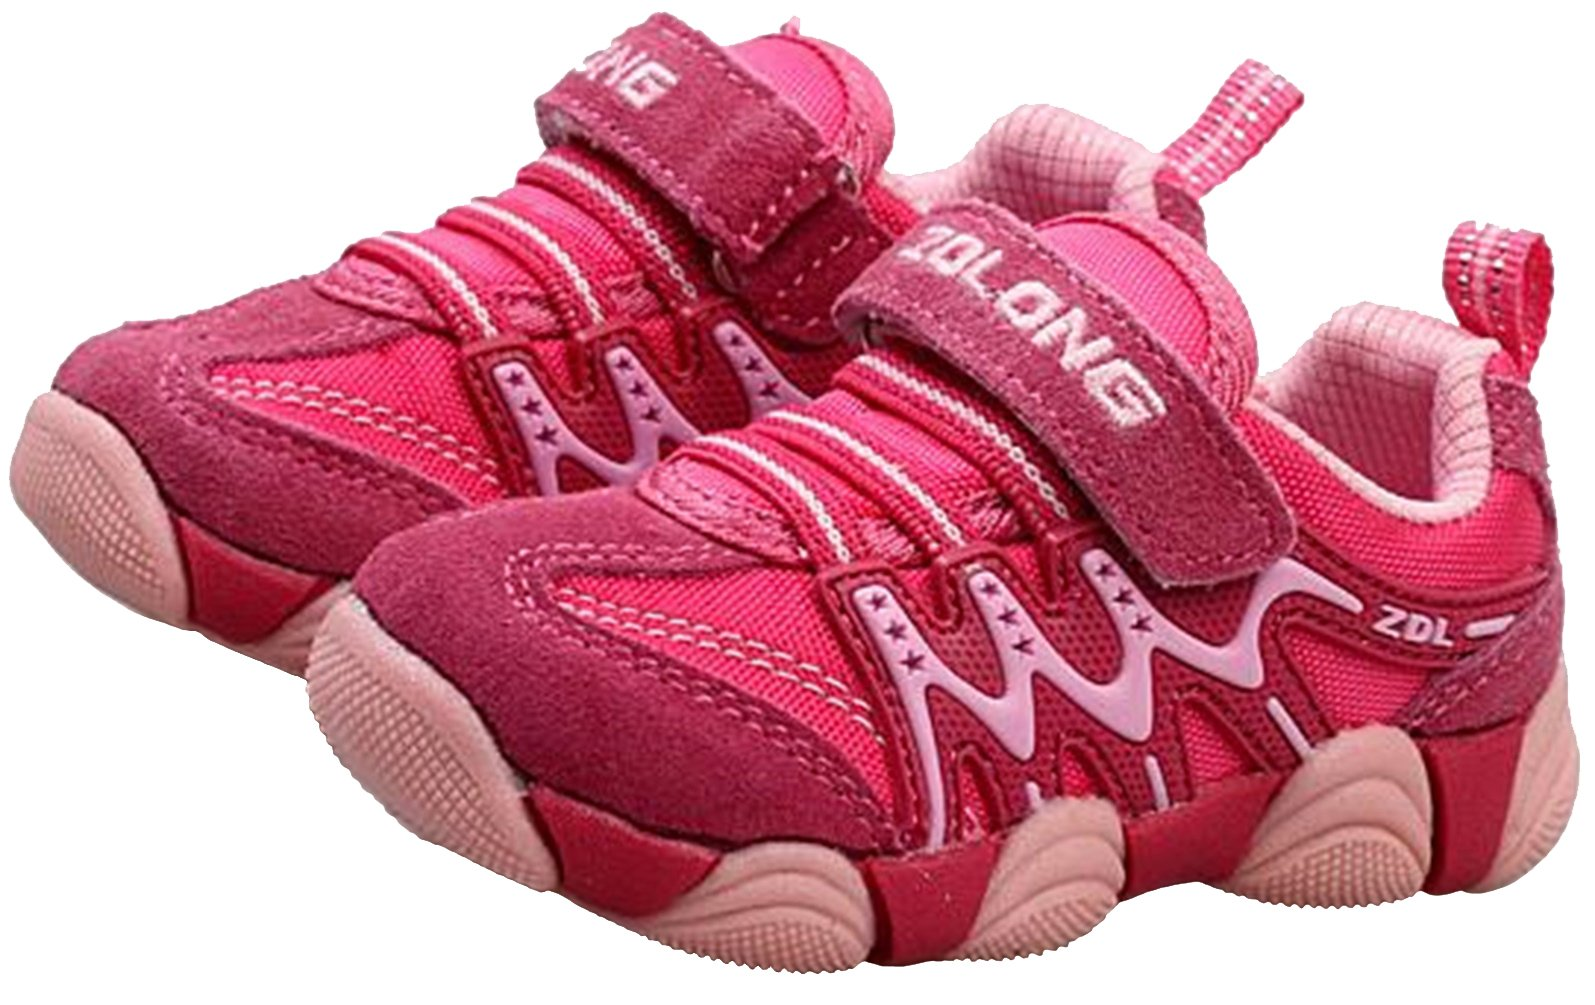 PPXID Boy's Girl's Athletic Lace up Casual Sneaker Running Shoes-Pink 11.5 US Size by PPXID (Image #1)